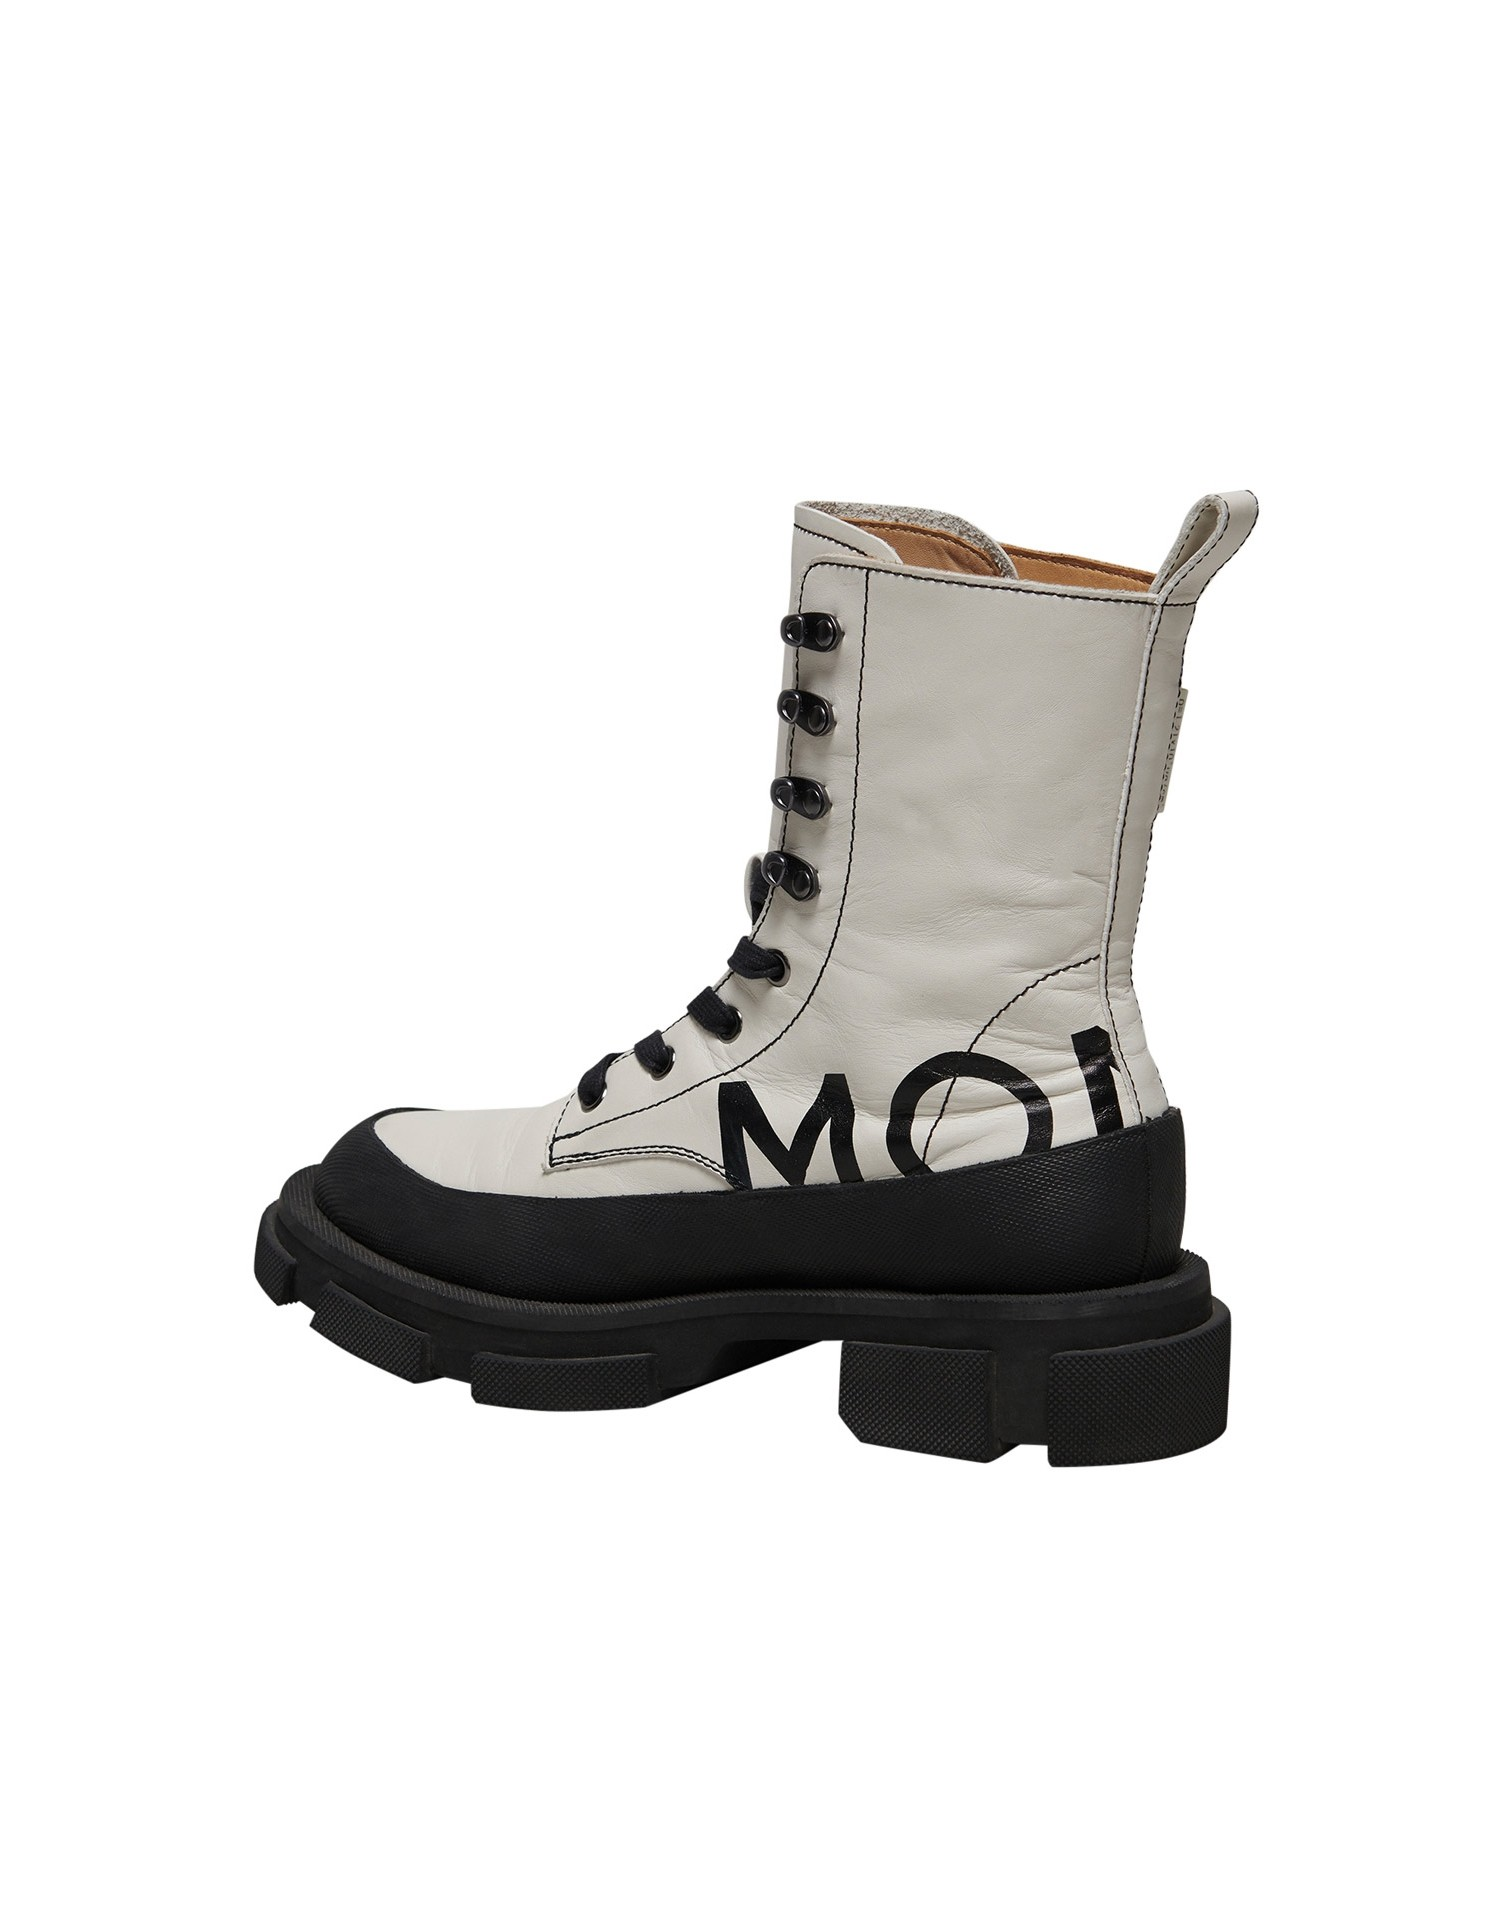 Both x MONSE Gao High Boots in White and Black Left Side View